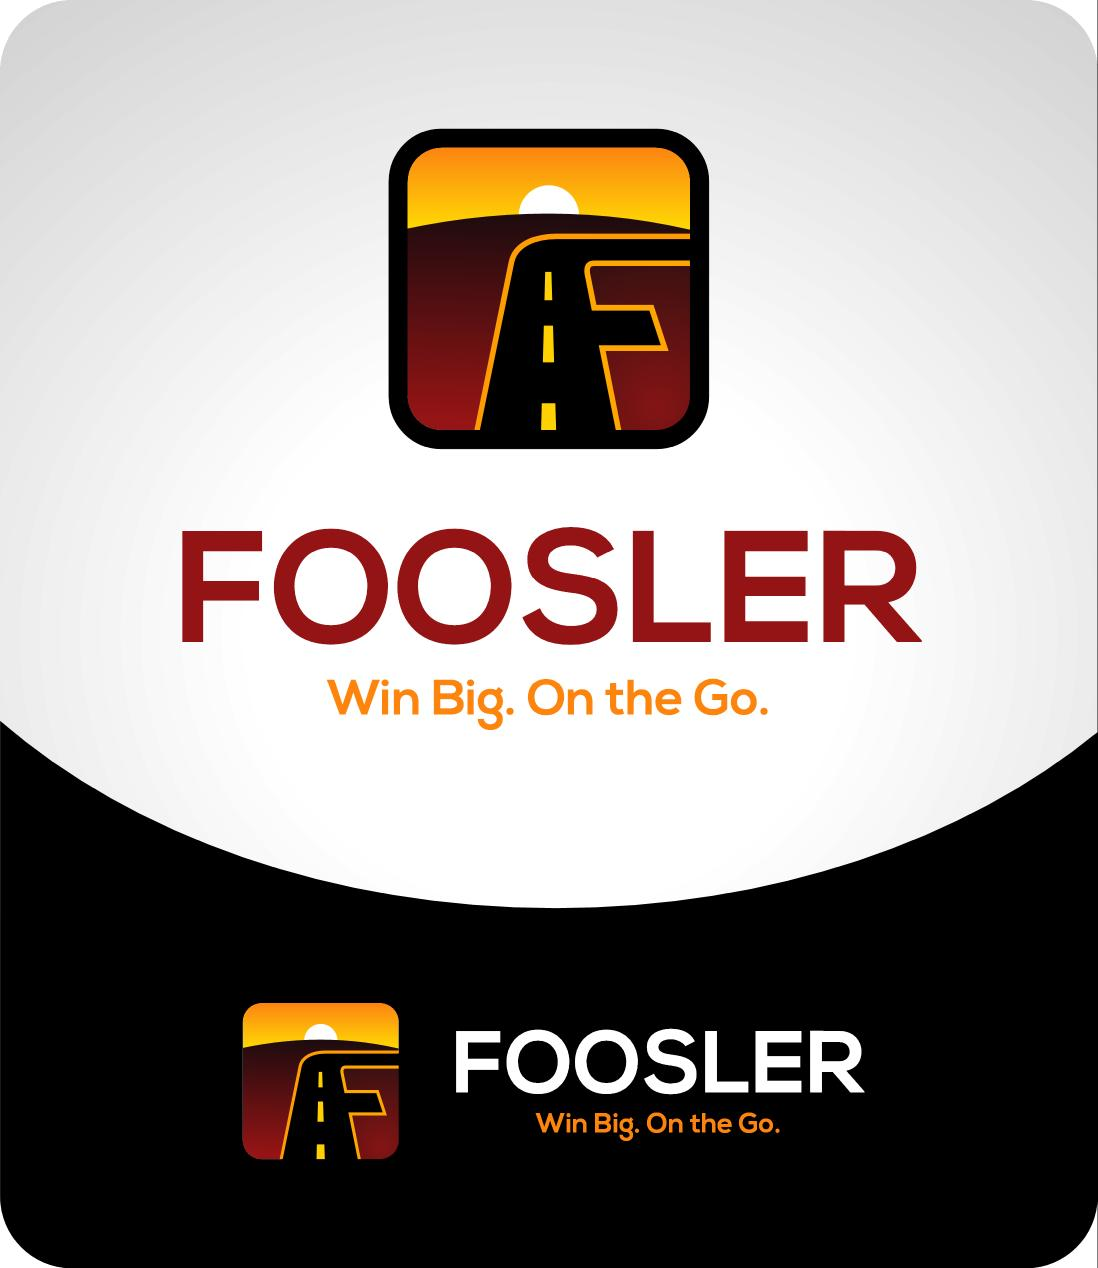 Logo Design by luvrenz - Entry No. 45 in the Logo Design Contest Foosler Logo Design.